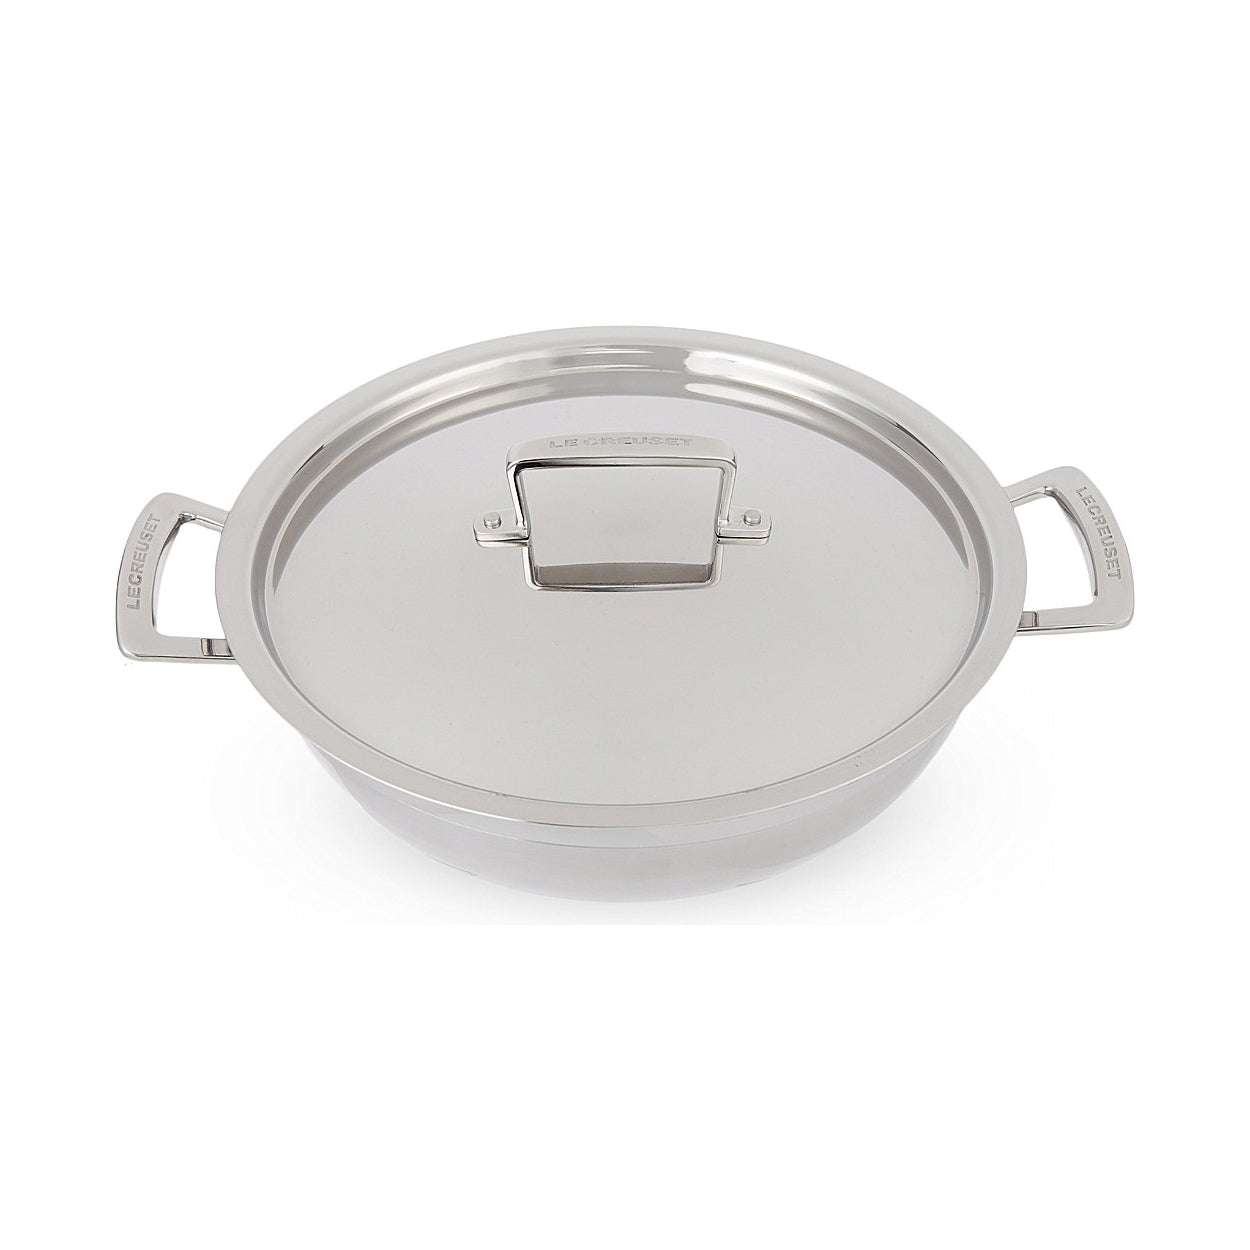 Le Creuset 3-Ply Stainless Steel Shallow Casserole 30cm